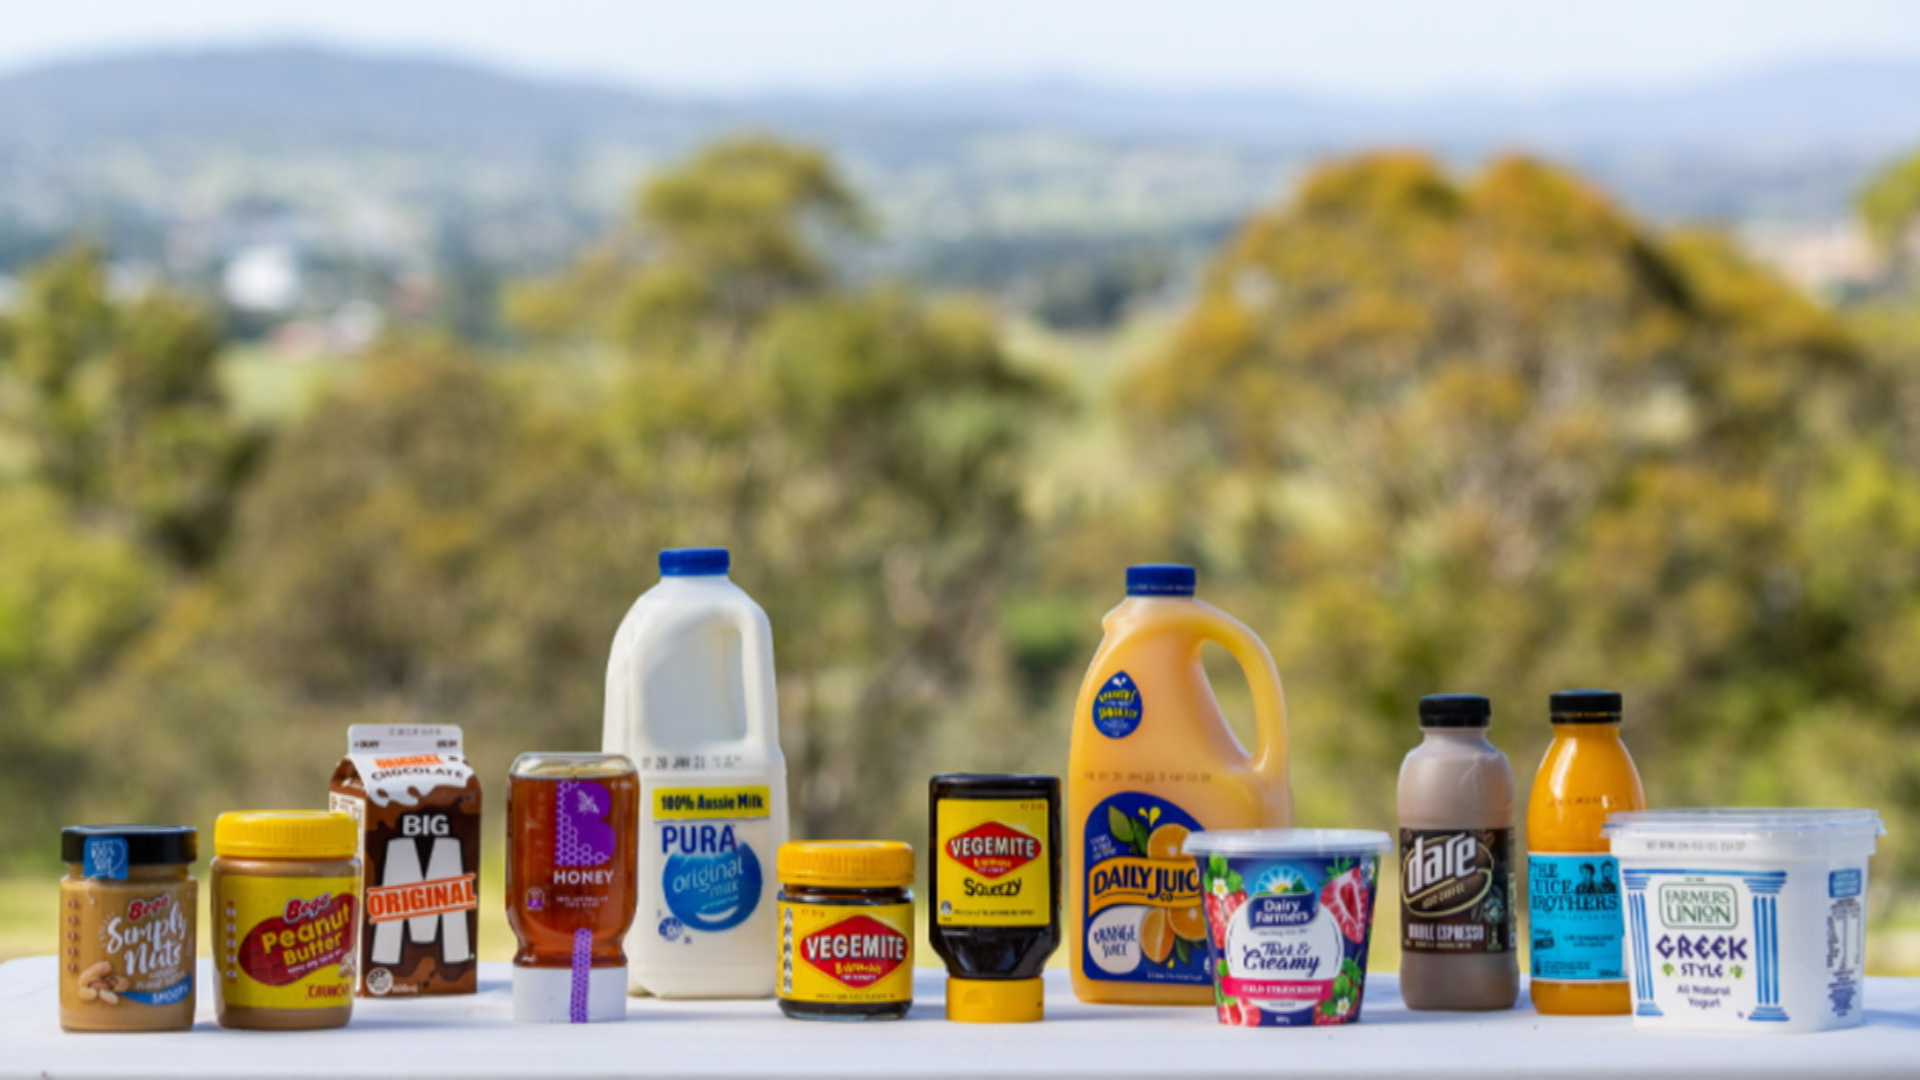 Bega's $530m deal brings iconic brands back into Australian hands